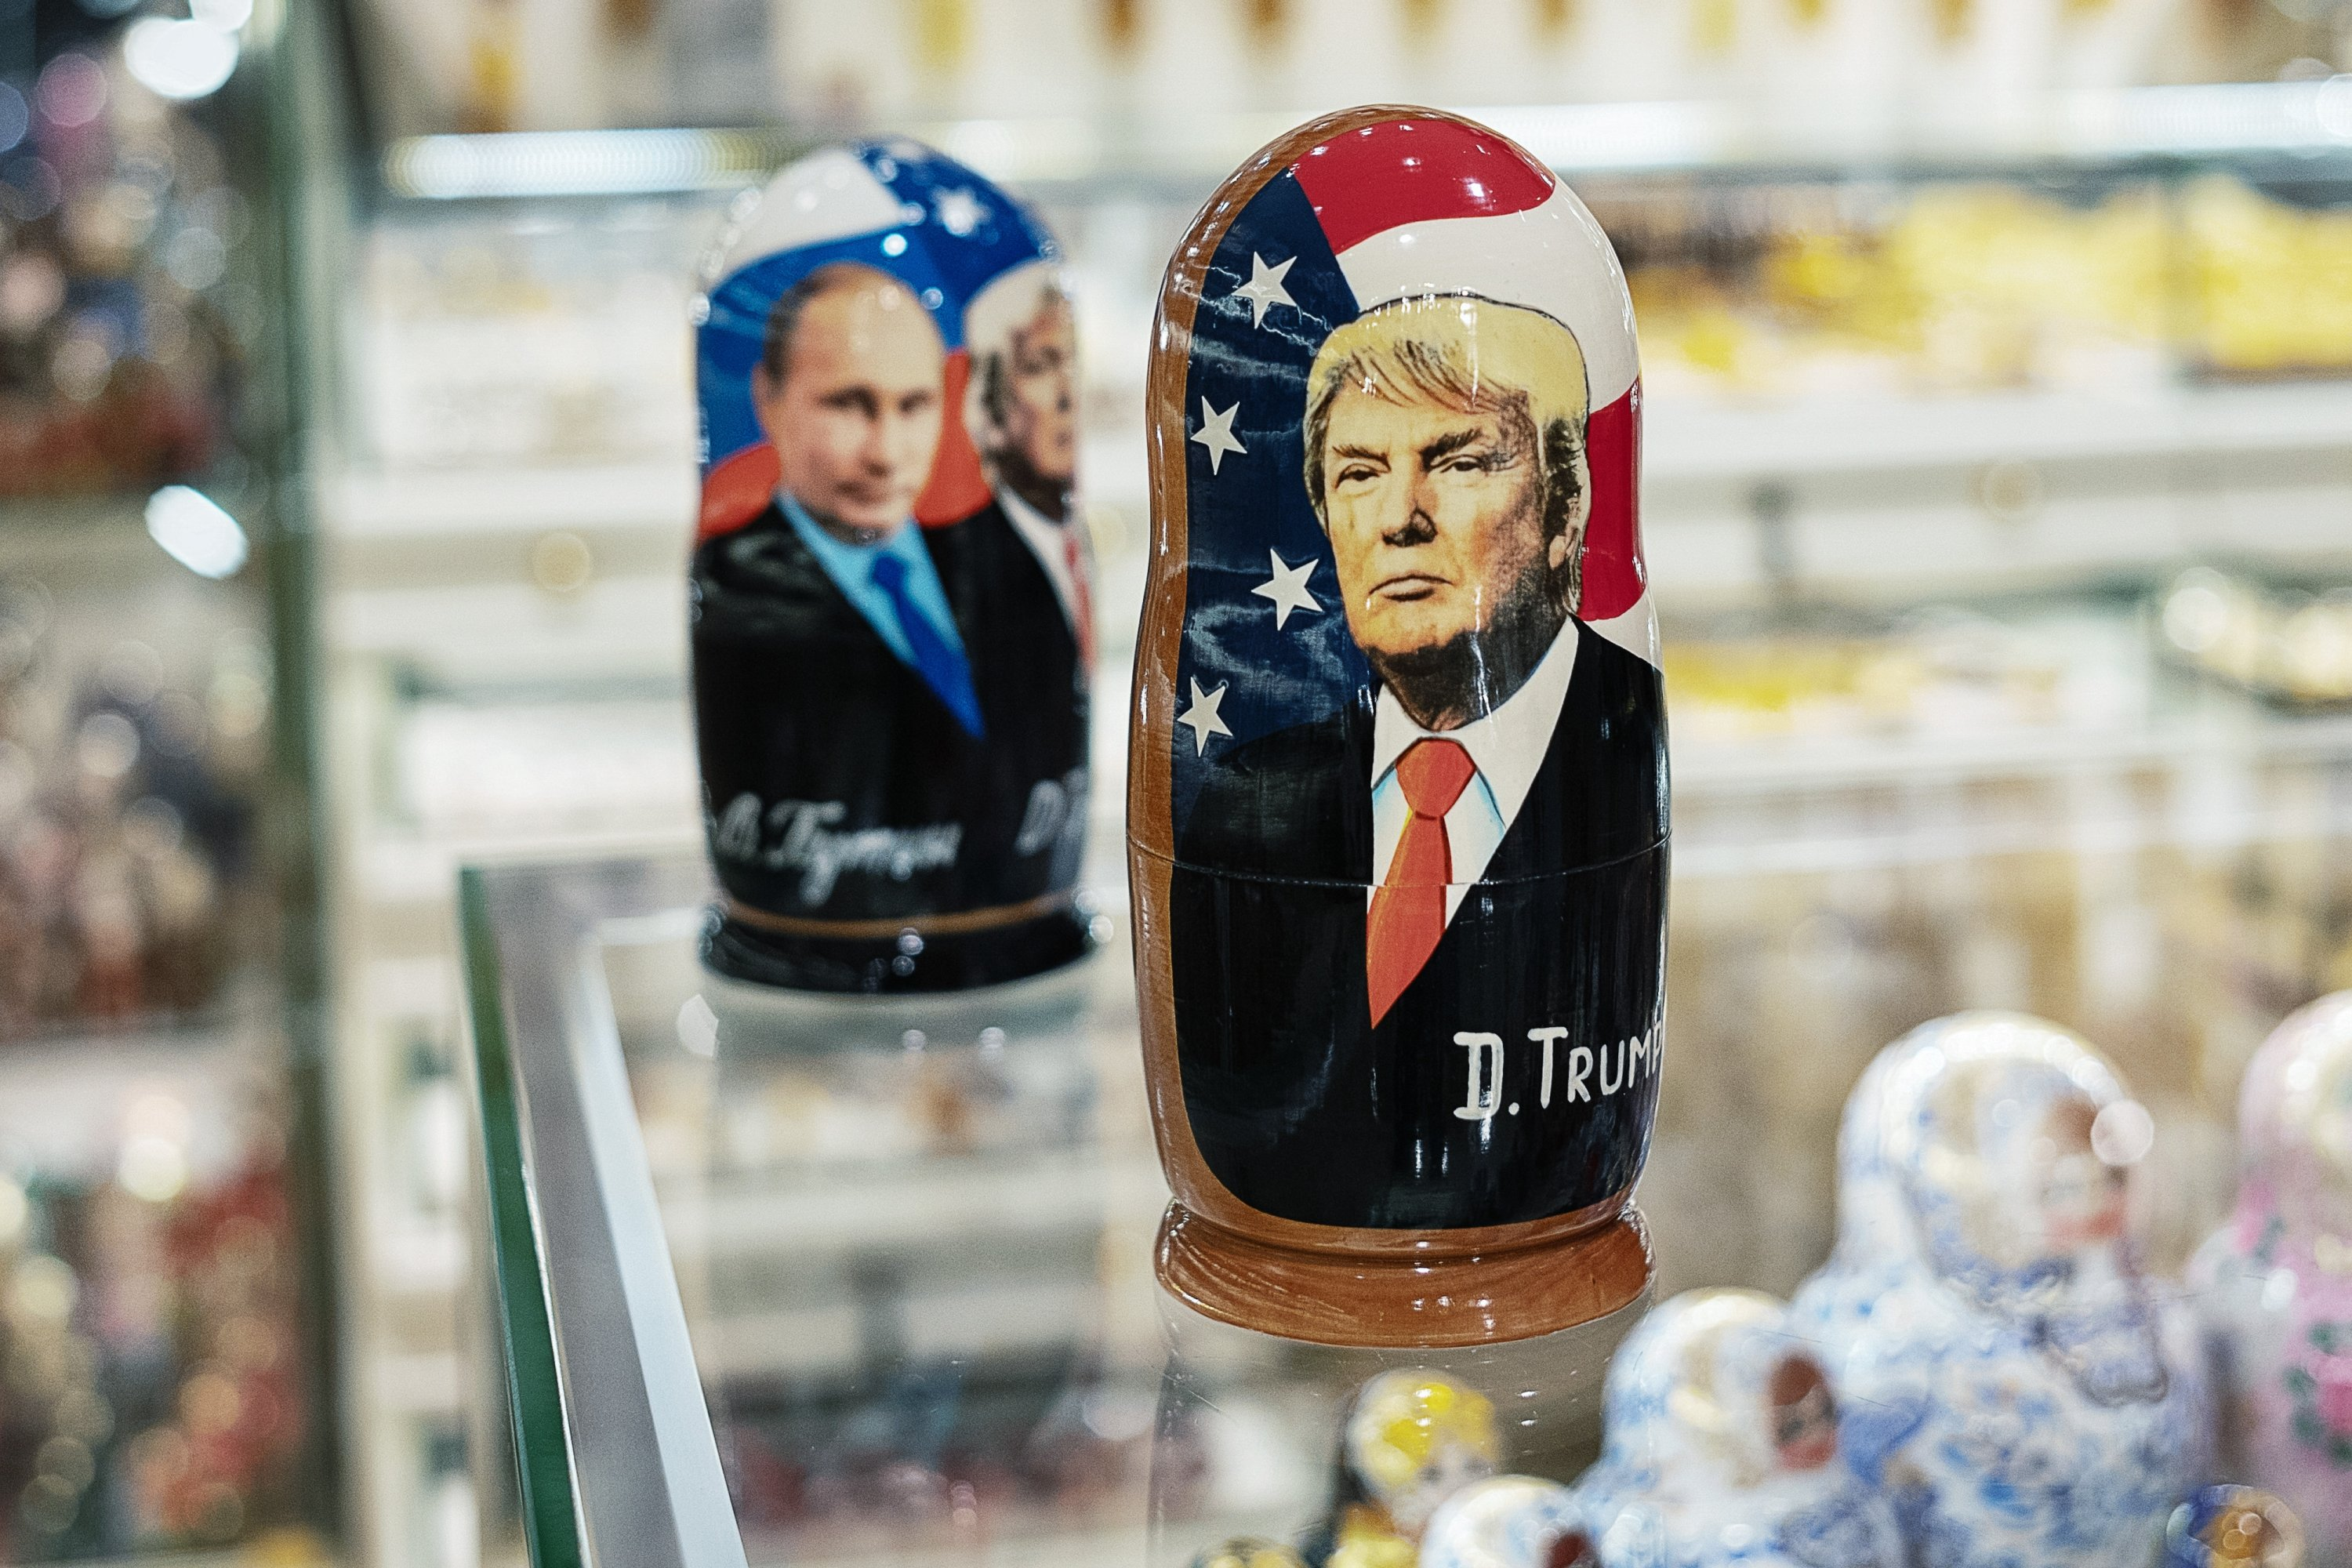 A souvenir shopkeeper displays Matryoshka dolls featuring Russian President Vladimir Putin (L) and then-U.S. President Donald Trump, Moscow, Russia, Dec. 3, 2019. (Photo by Getty Images)